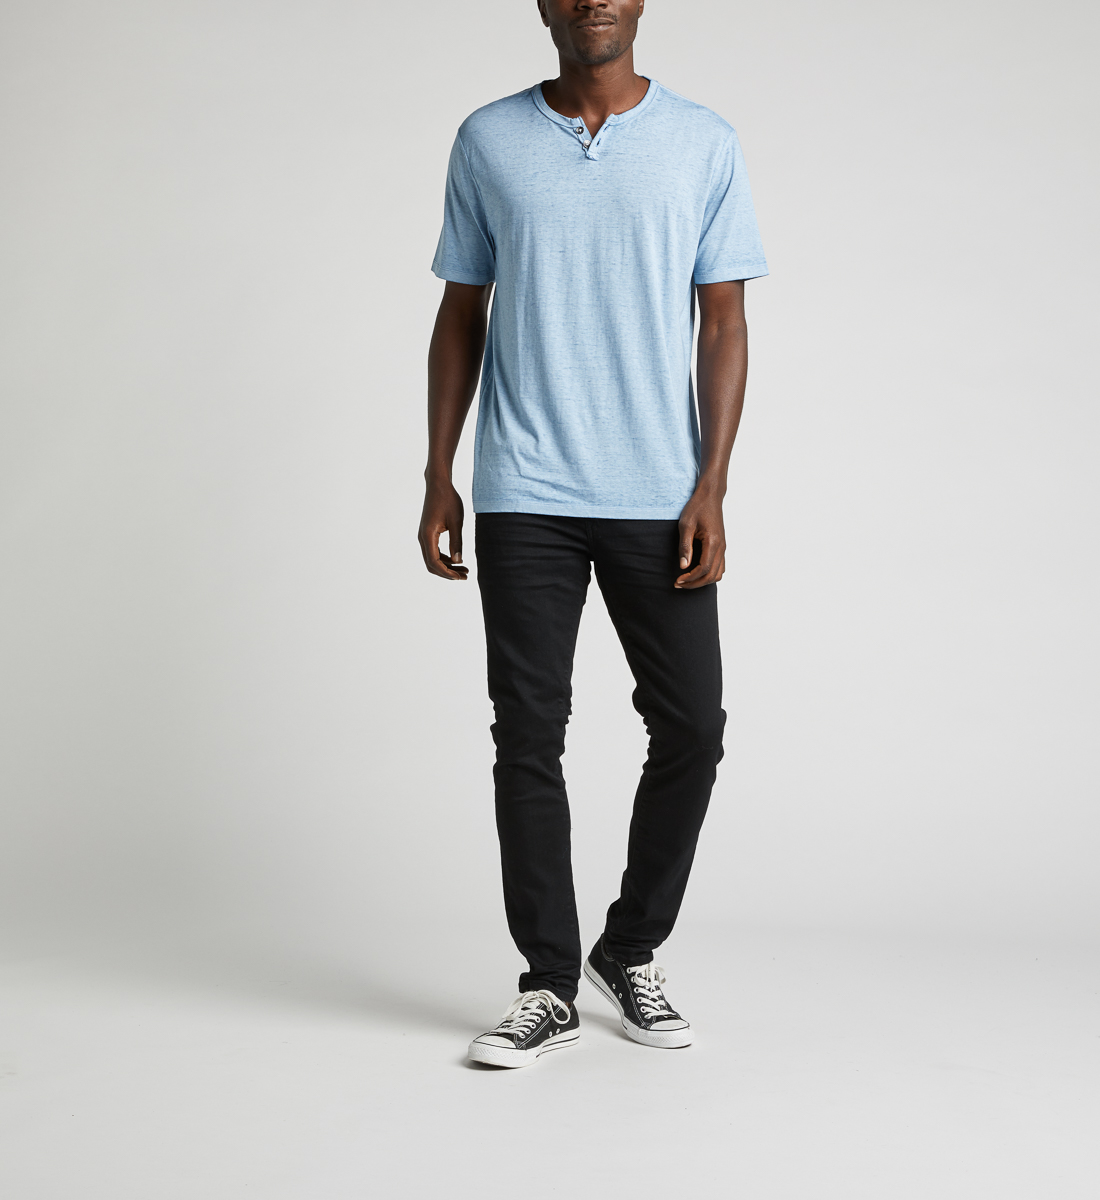 Kaleo Henley Tee,Light Blue Back